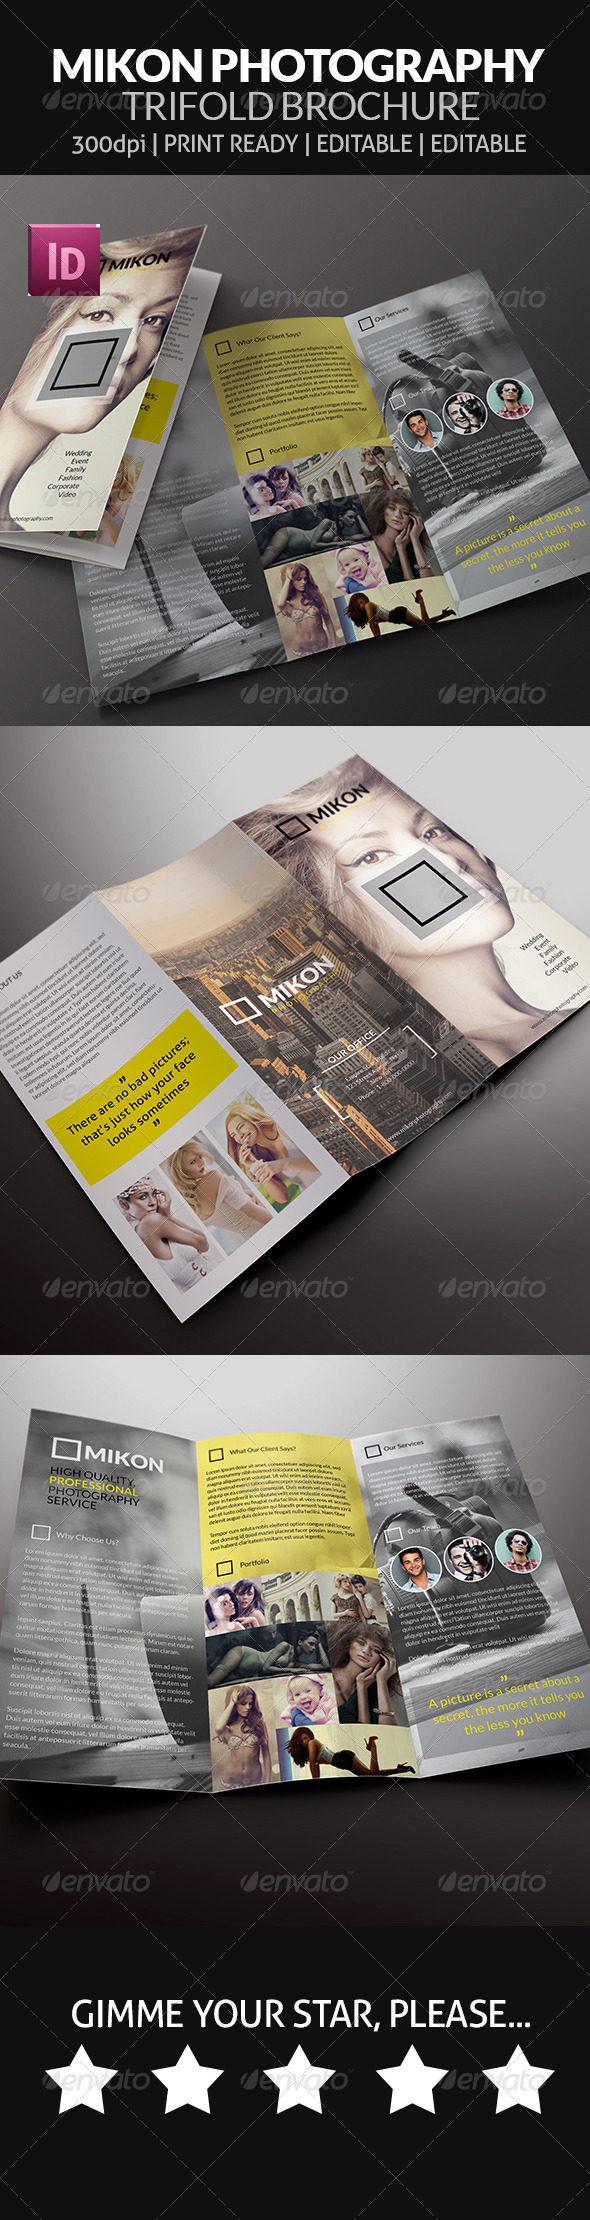 Mikon - Photography Trifold Brochure